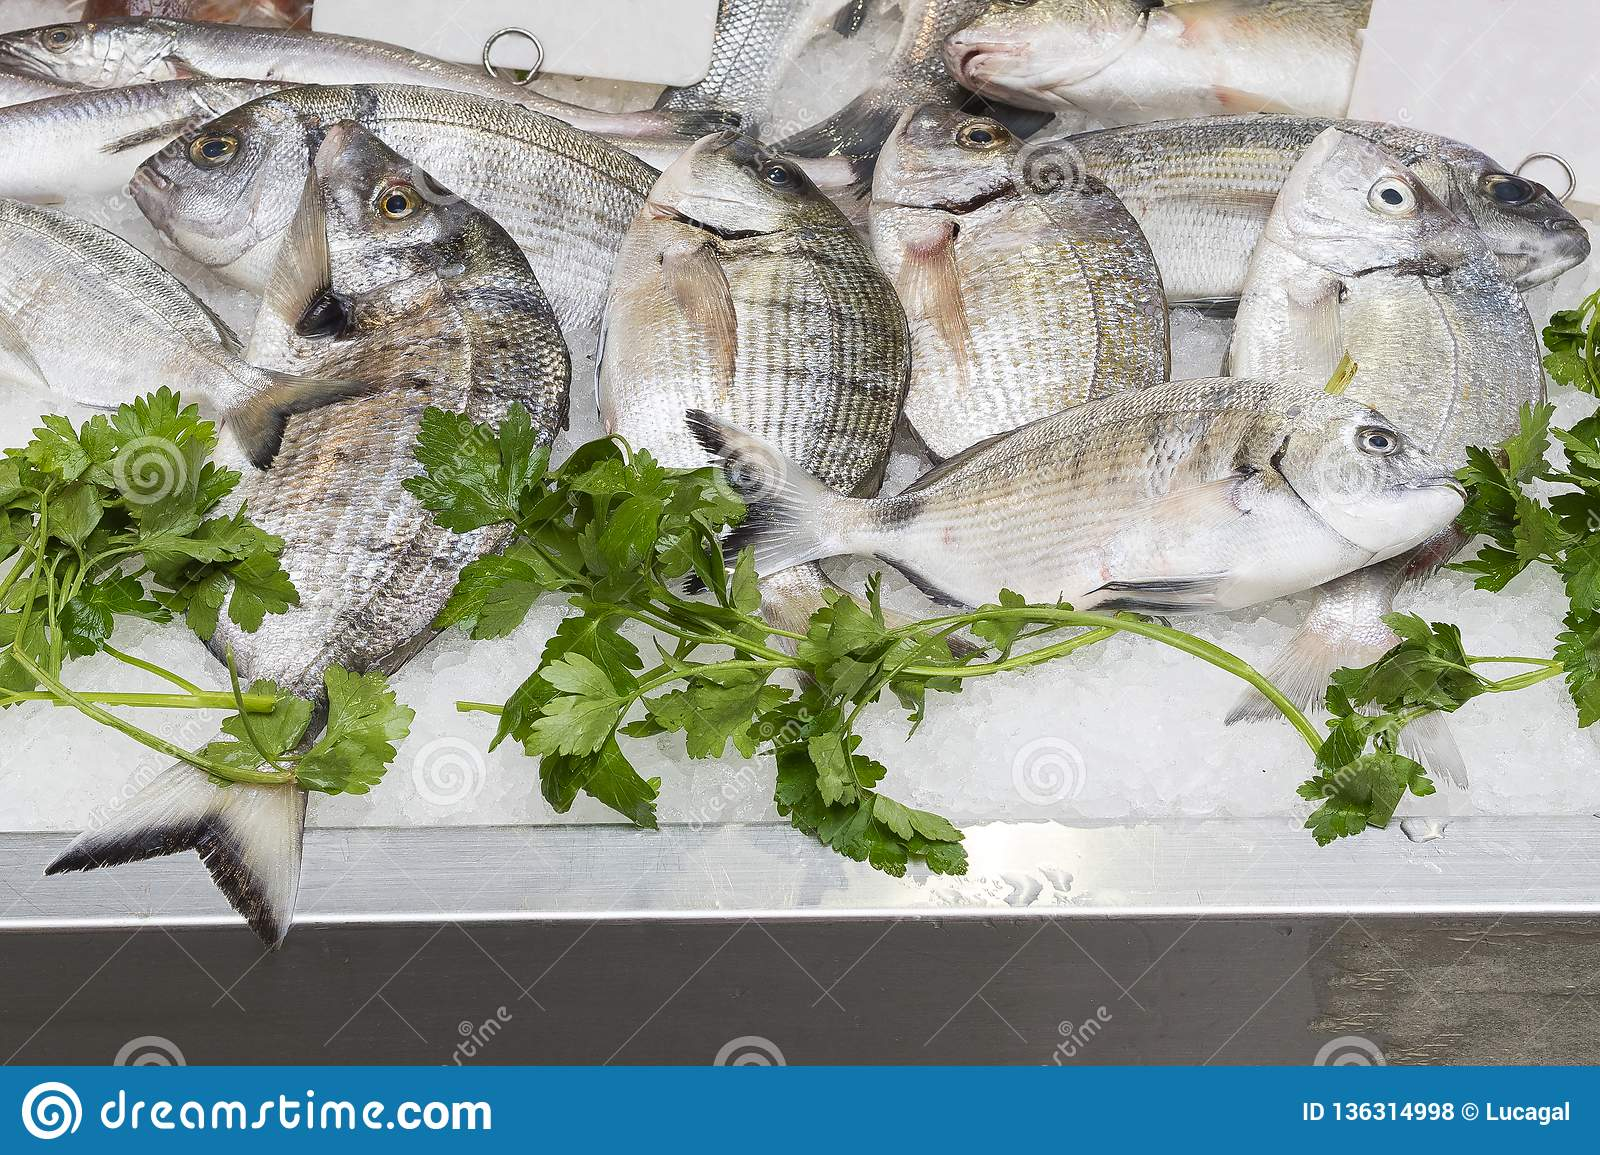 Fresh Sargo Or White Seabream Diplodus Sargus At A Fish ... on volcano map, mariana trench map, peninsula map, sailing map, massif map, sound map, channel map, ocean map, estuary map, coral reef map, seabed map, mediterranean map, caribbean map, gulf map, glacier map, bay map, south east asia map, world map, lagoon map, lake map,